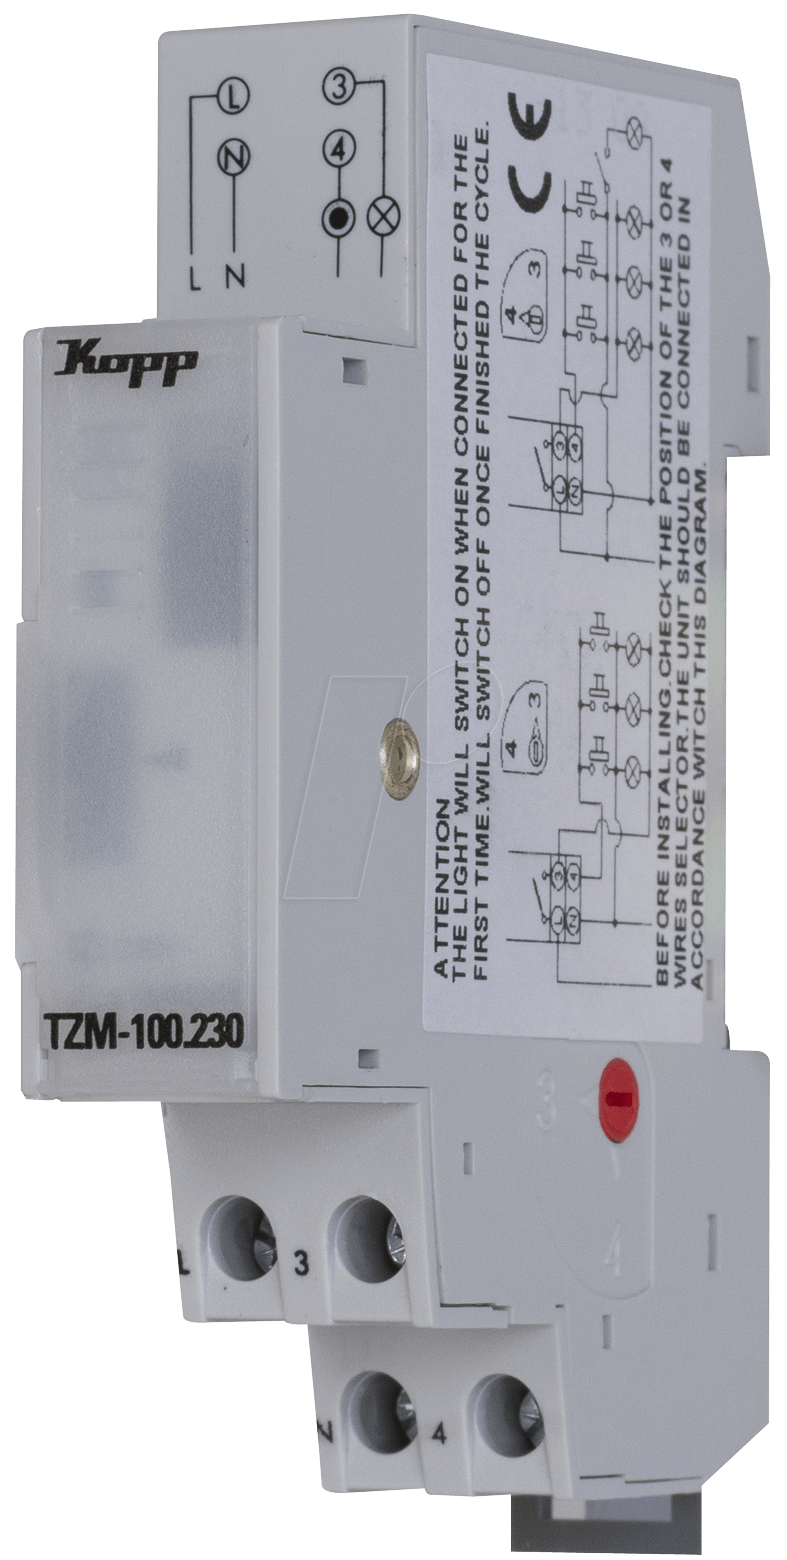 El Tzm 100230 Staircase Lighting Timer Switch At Light Wiring On A First Kopp 760906013